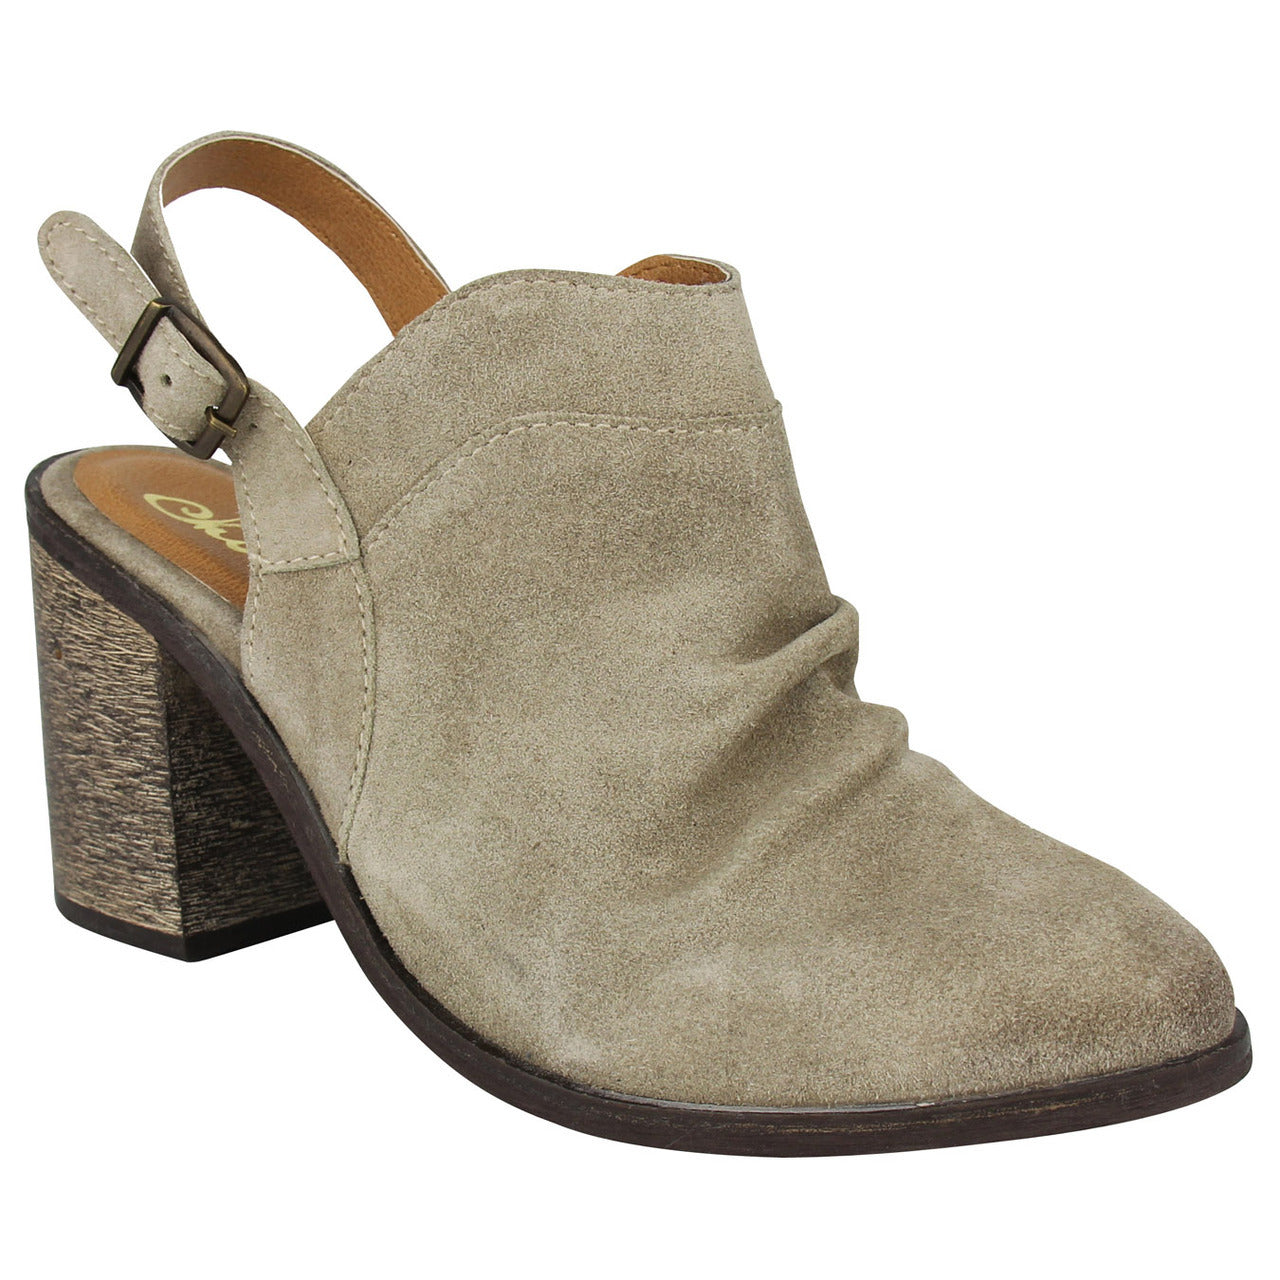 naughty_monkey_Arizona - Taupe_pump_casual